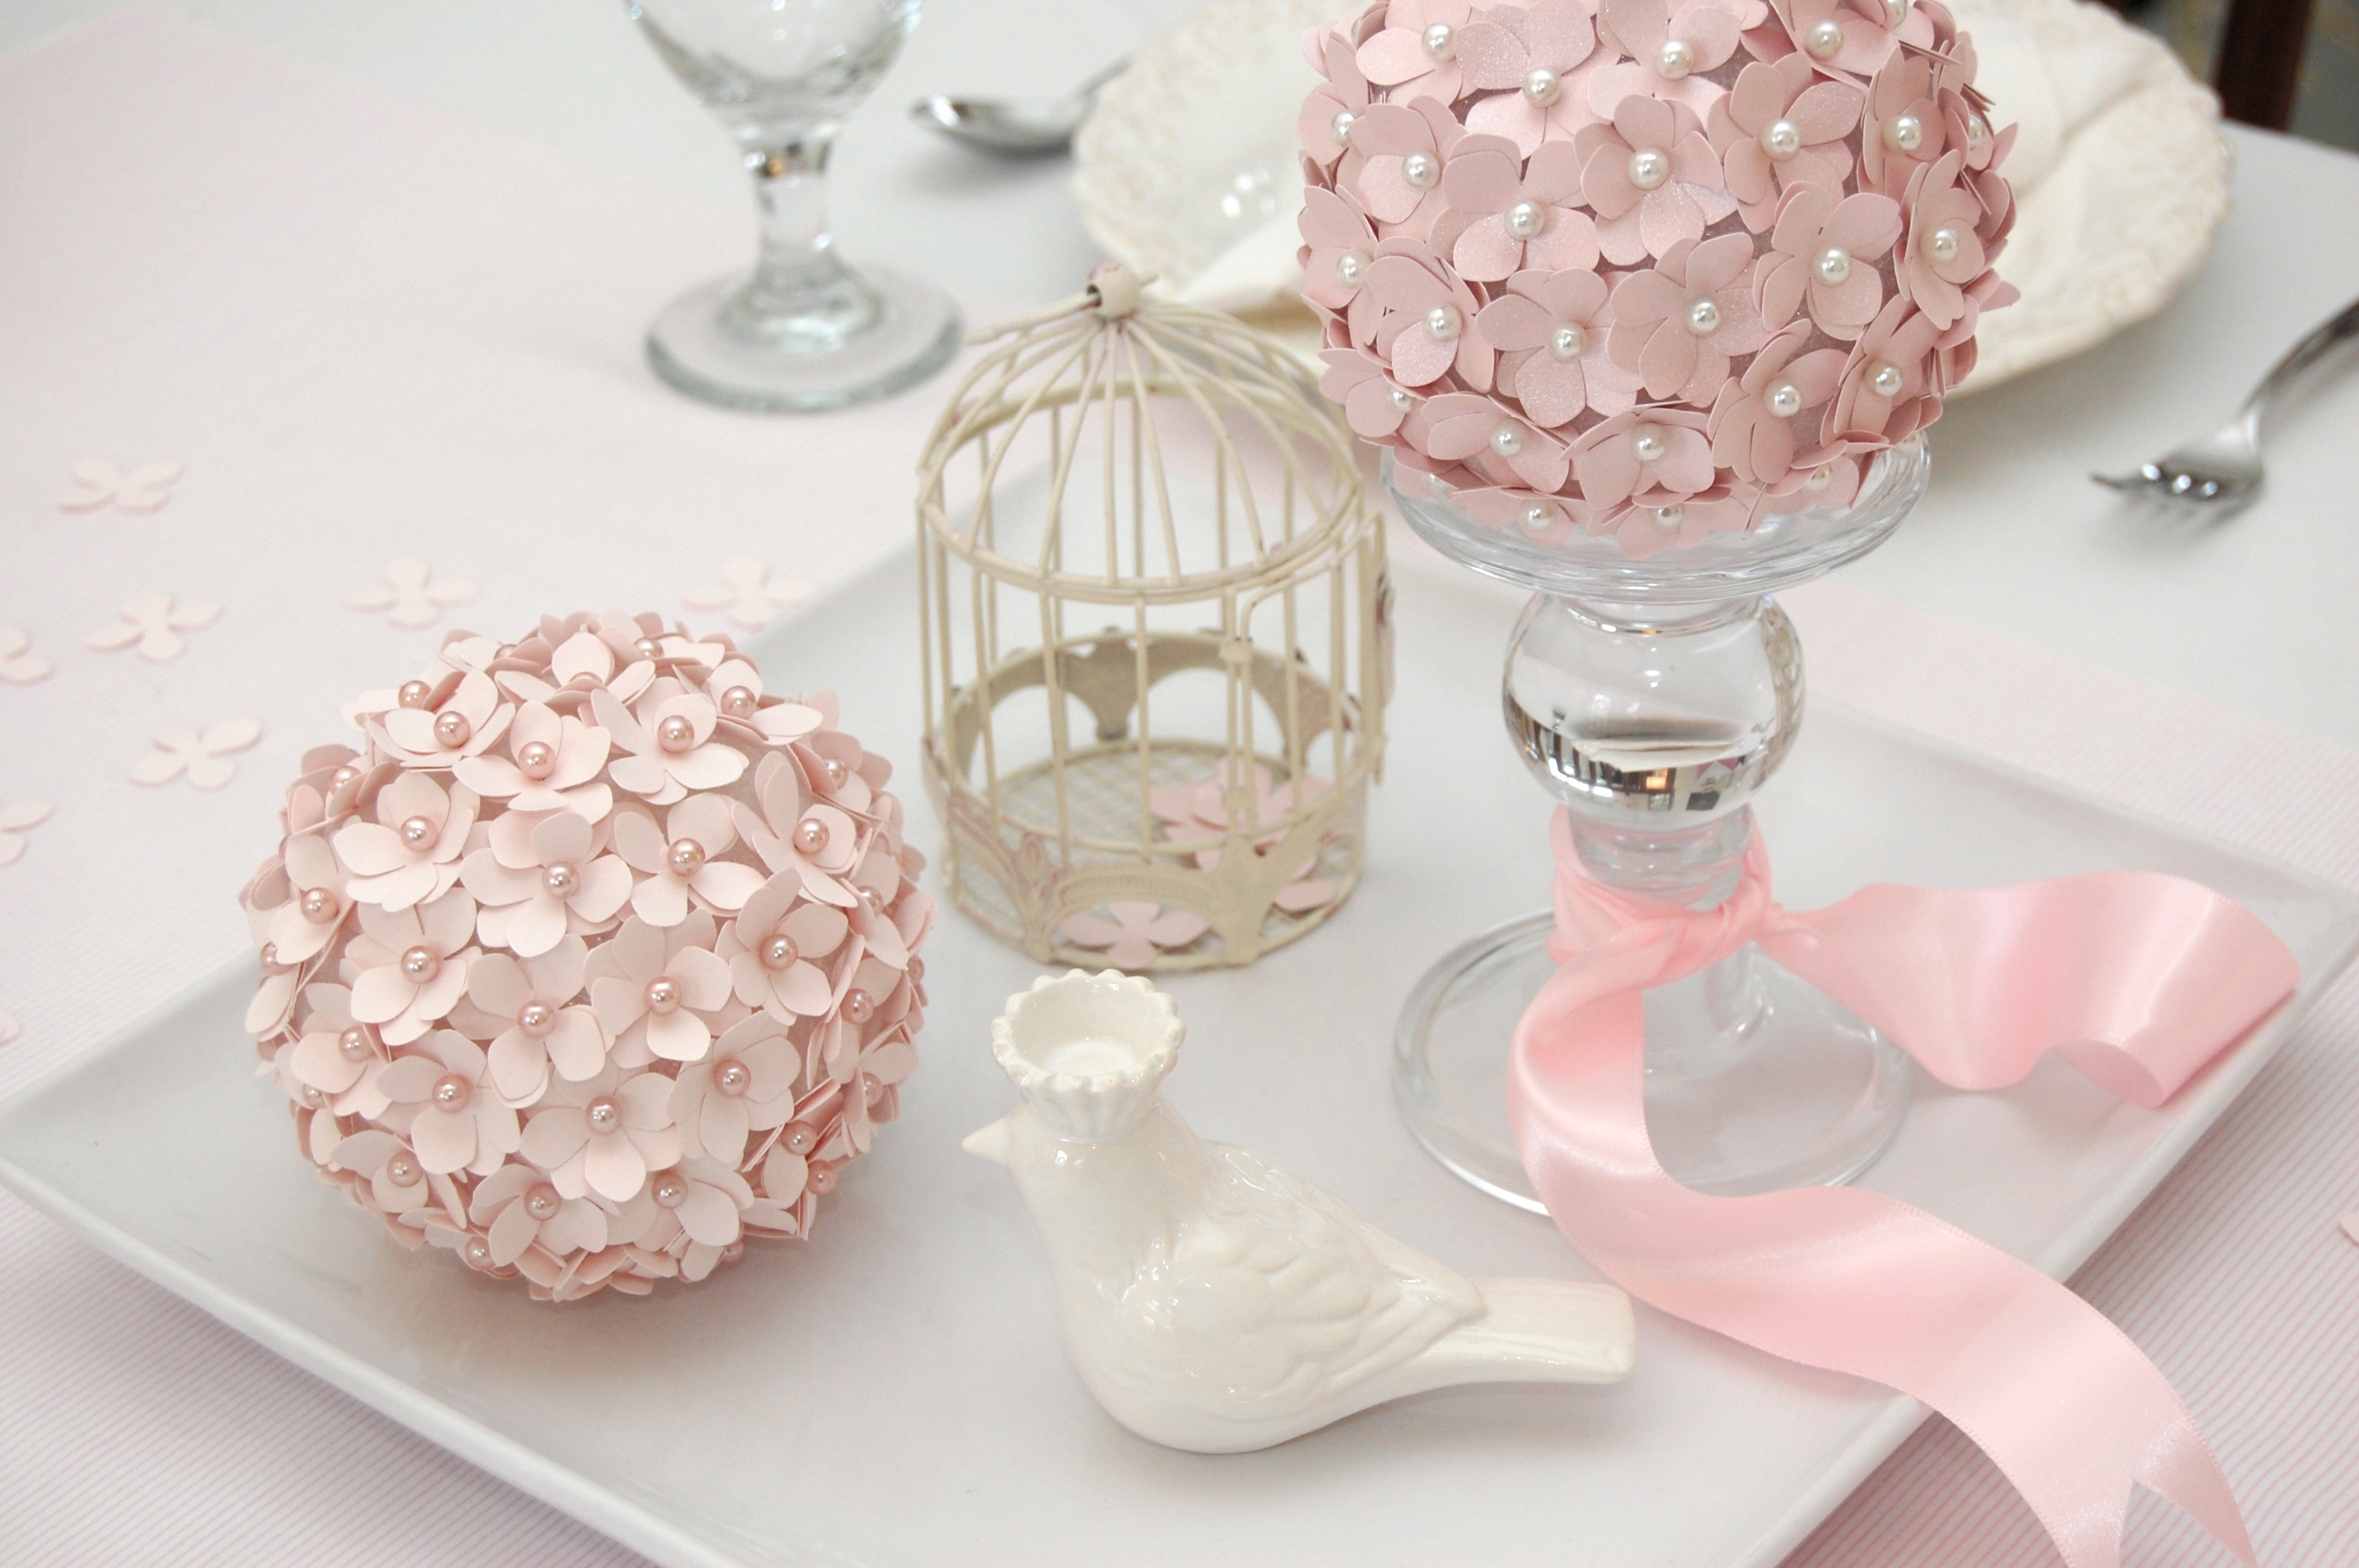 Diy baby shower centerpieces room 4 interiors for Baby shower decoration centerpieces